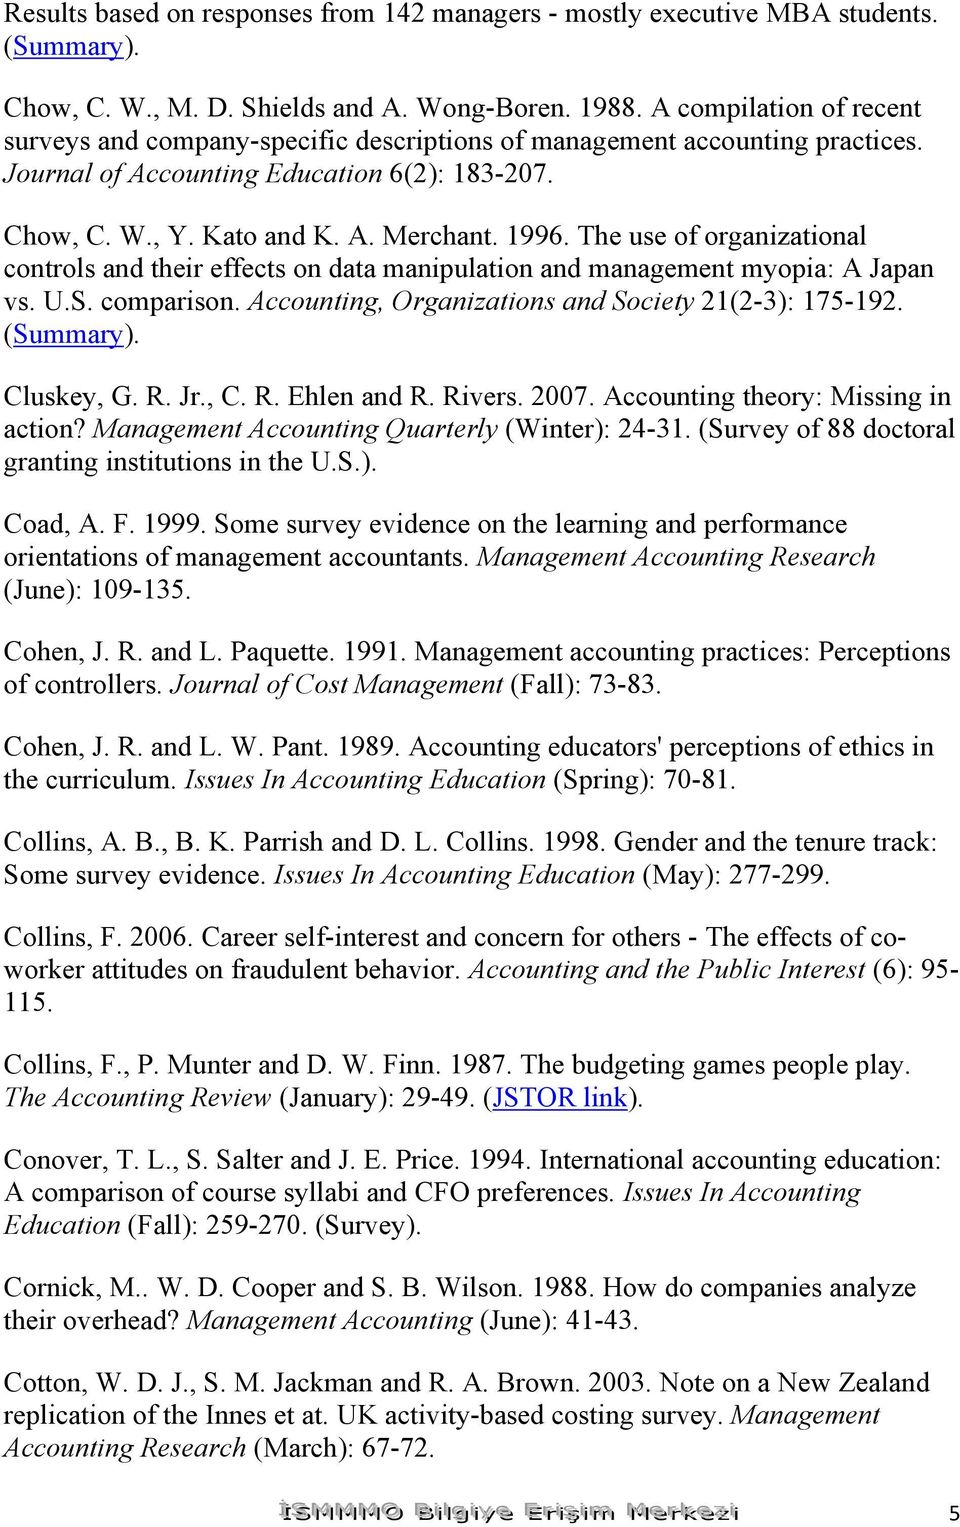 The use of organizational controls and their effects on data manipulation and management myopia: A Japan vs. U.S. comparison. Accounting, Organizations and Society 21(2-3): 175-192. (Summary).